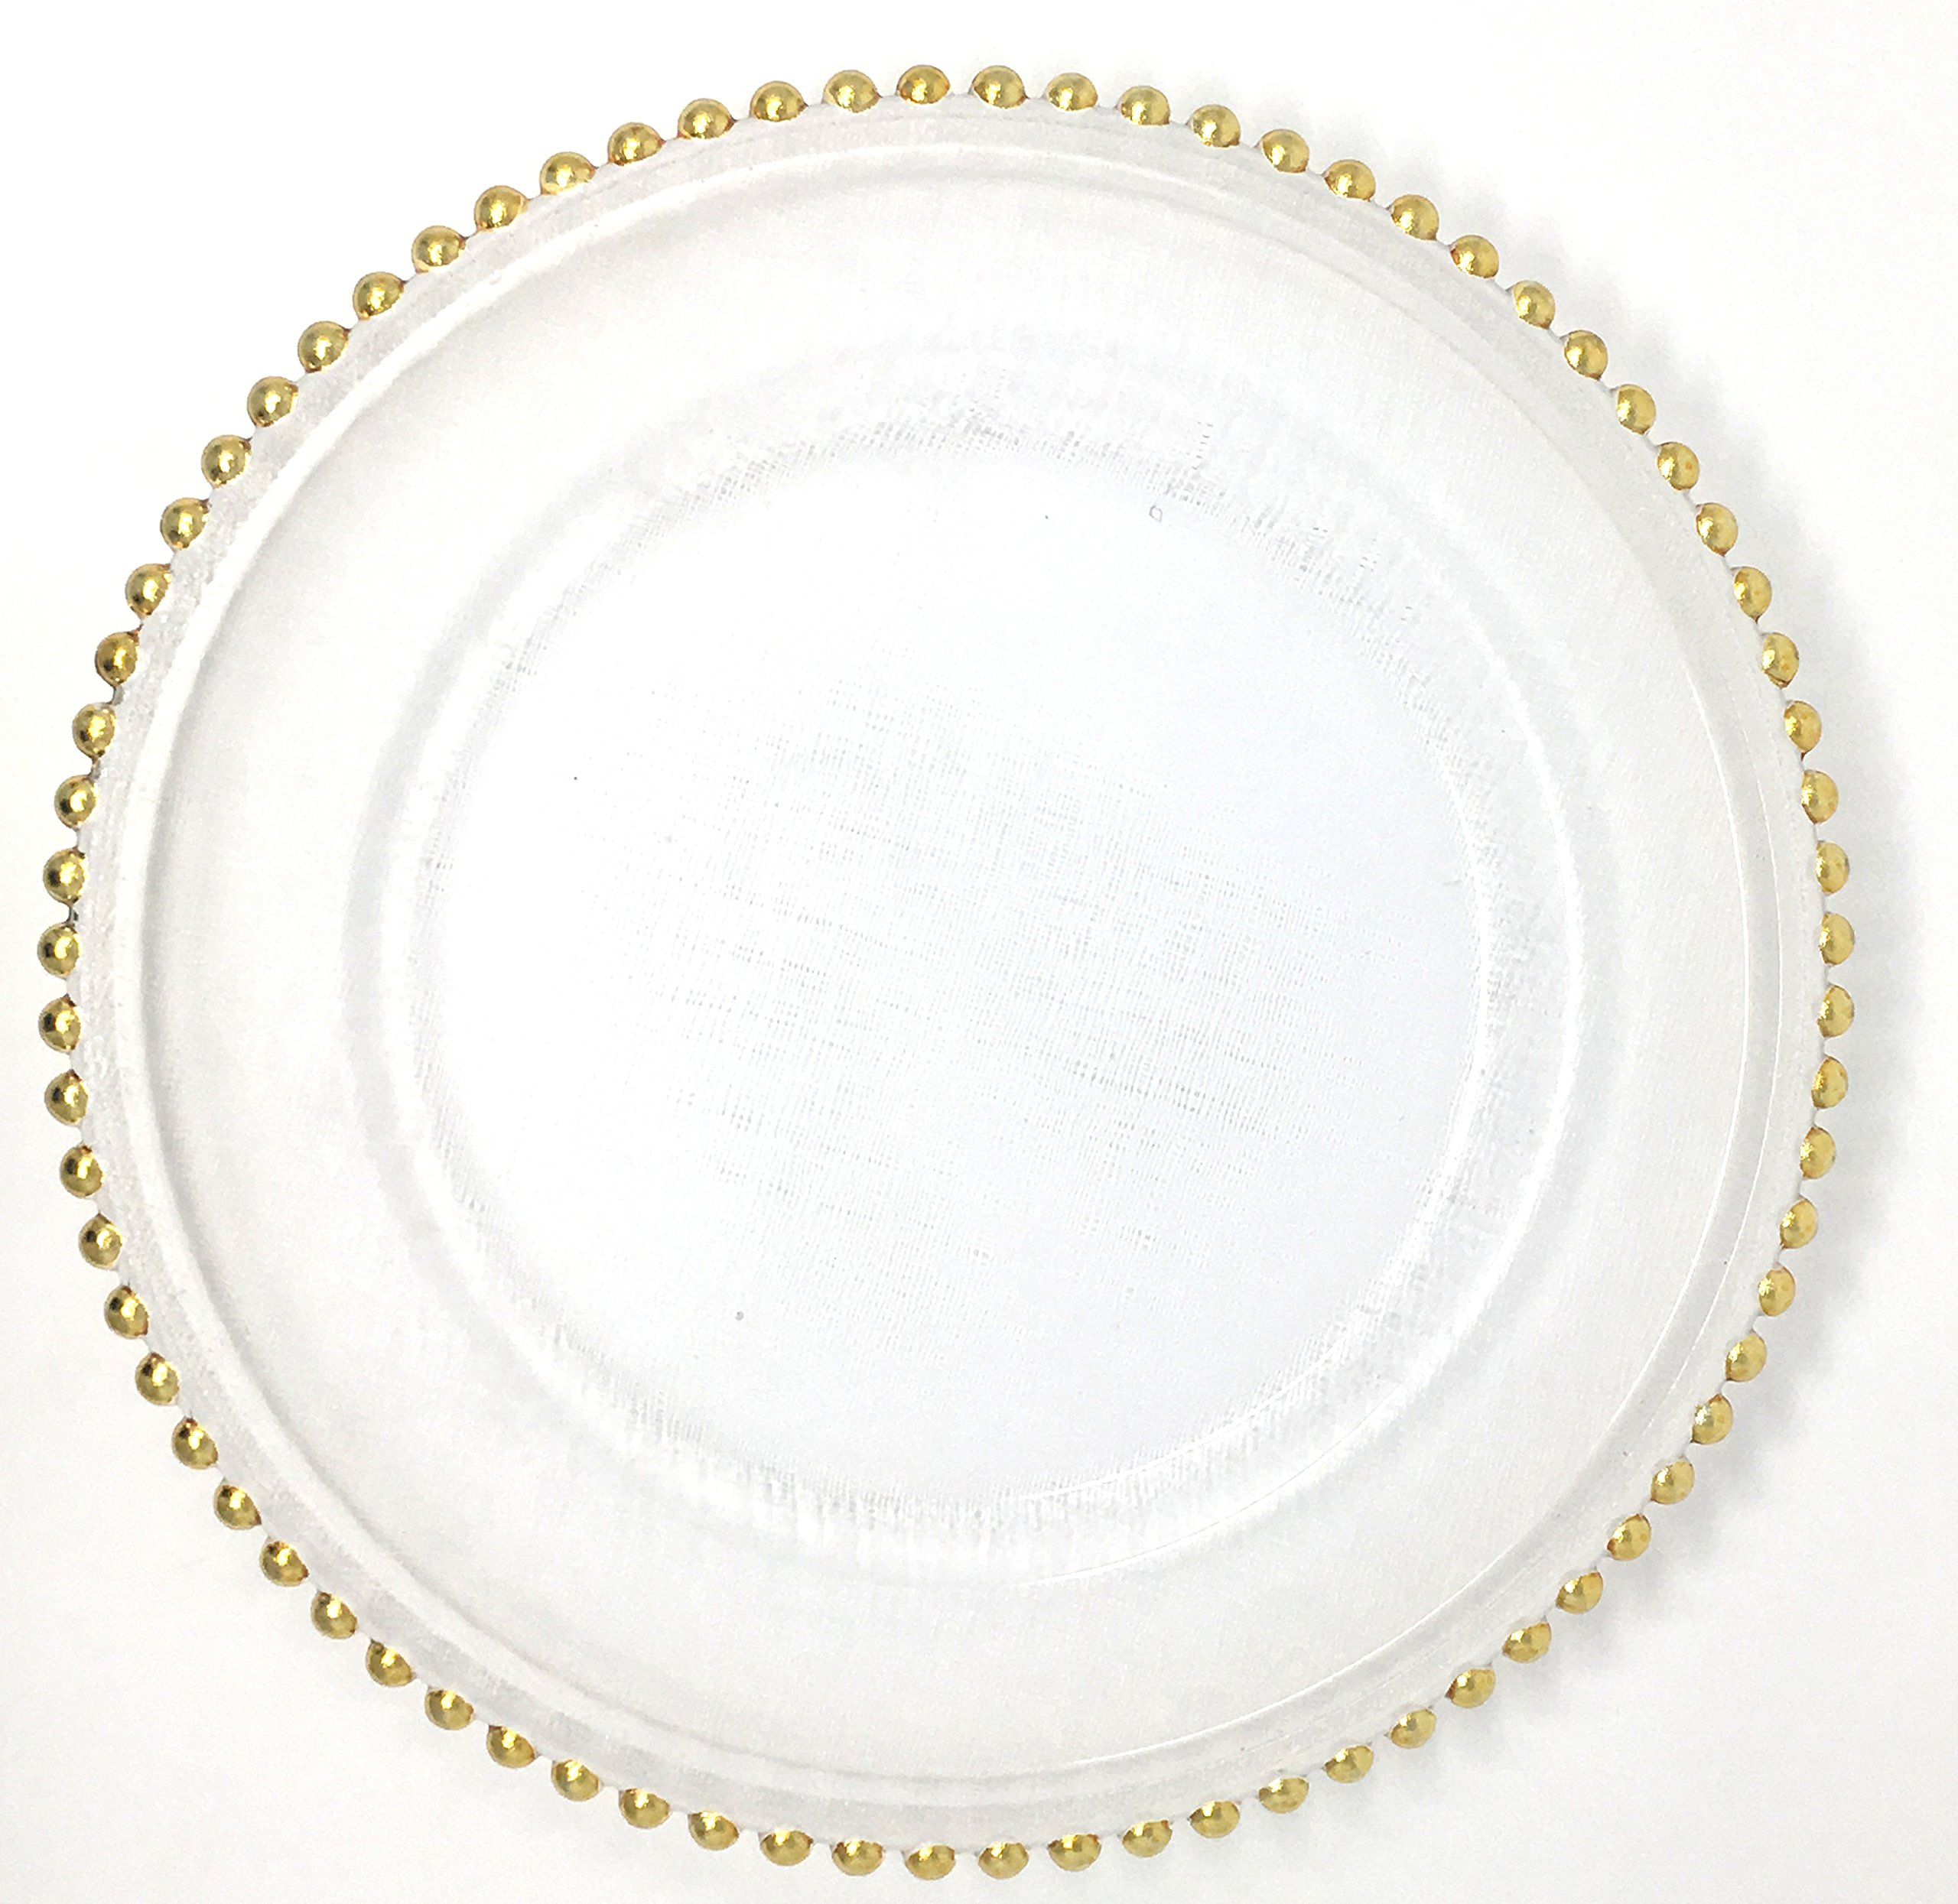 Spectacular Glass Dinnerware Formal 13-Inch Gold Beaded Rim Clear Glass Charger Plate Wedding Party Dinner Modern Appeal Glass Plates (16)